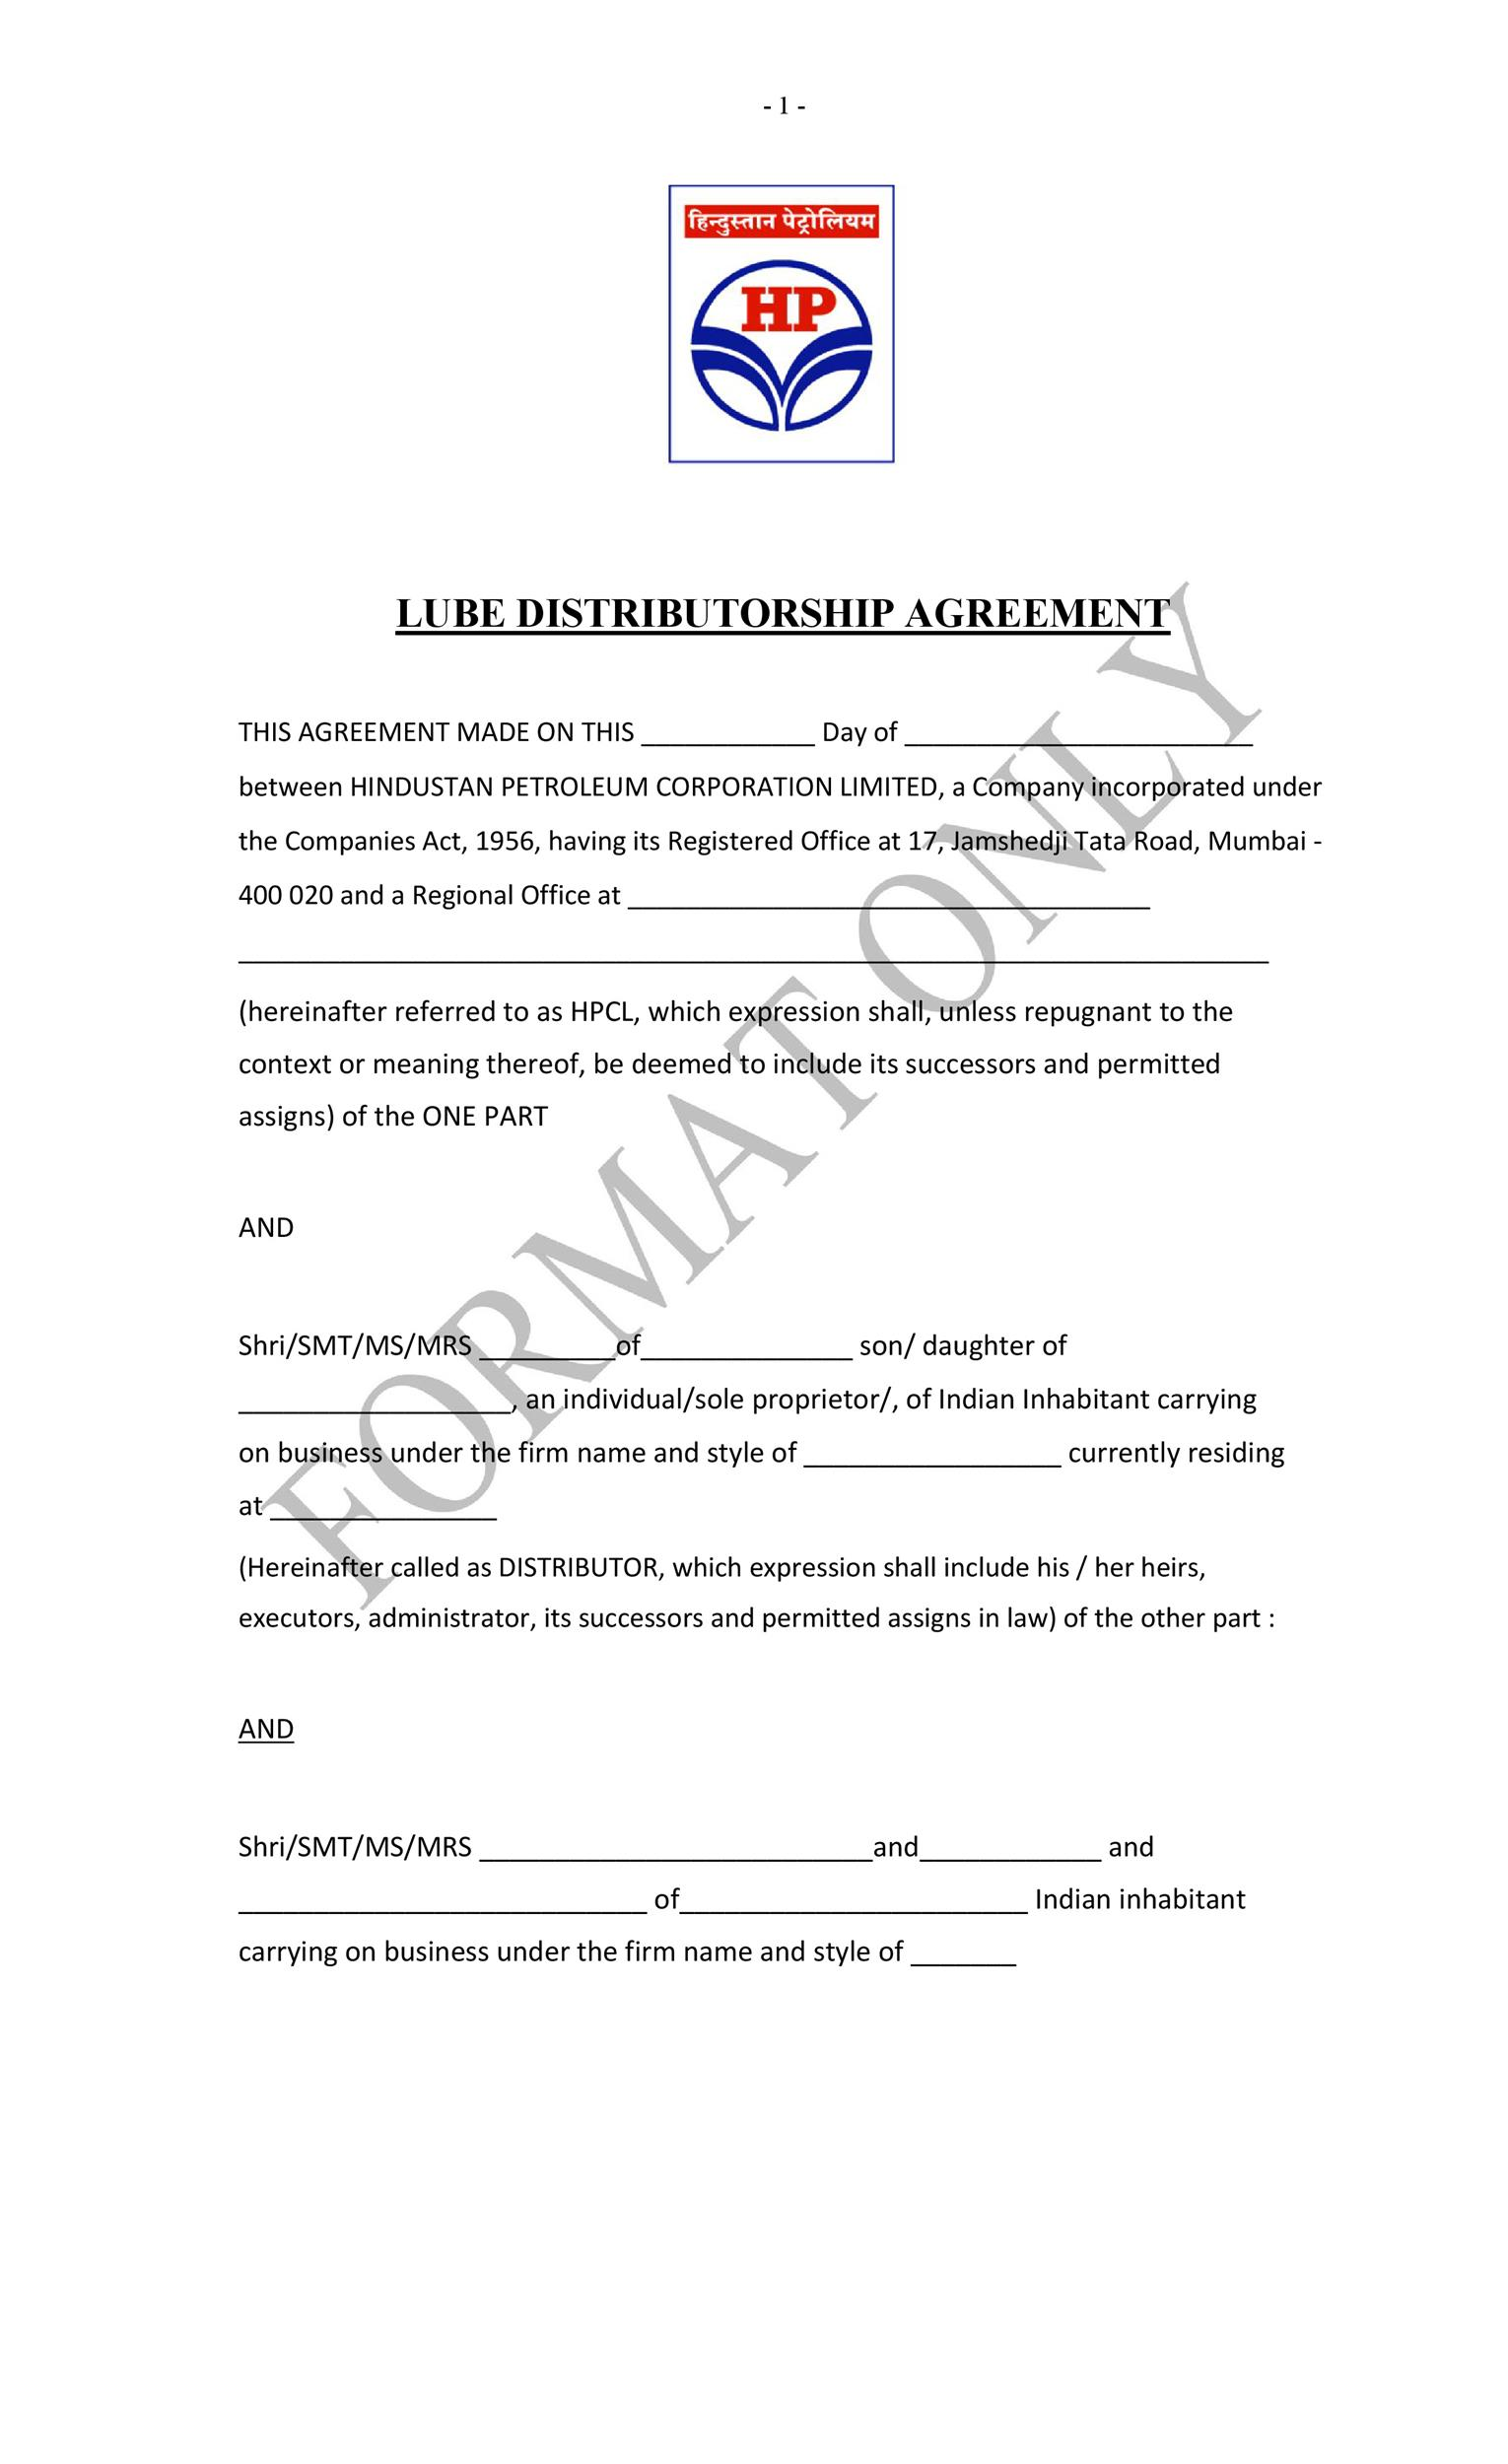 007 Incredible Exclusive Distribution Contract Template High Resolution  Agreement South Africa Non Free UkFull